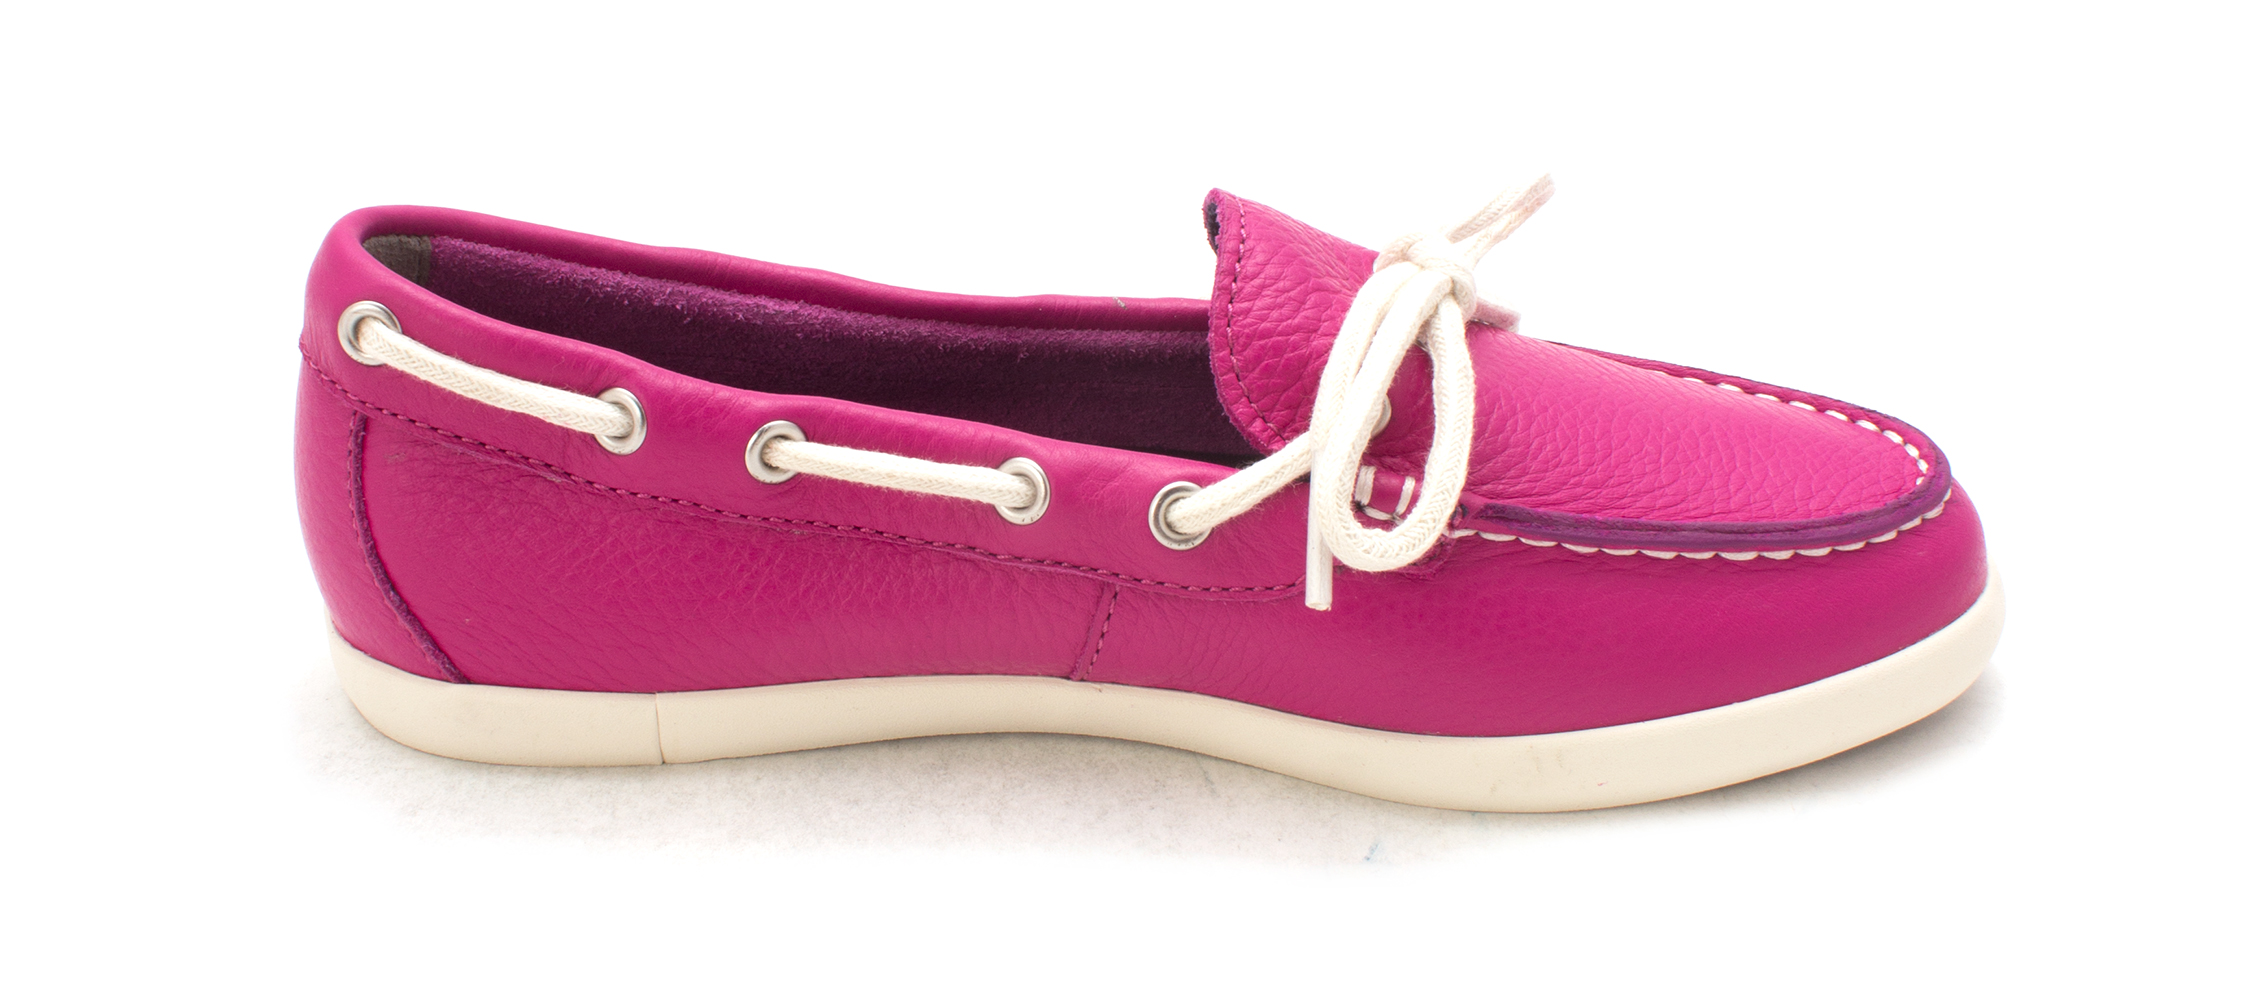 Cole Haan Womens W02519 Closed Toe Boat Shoes, Fuchsia Red, Size 6.0